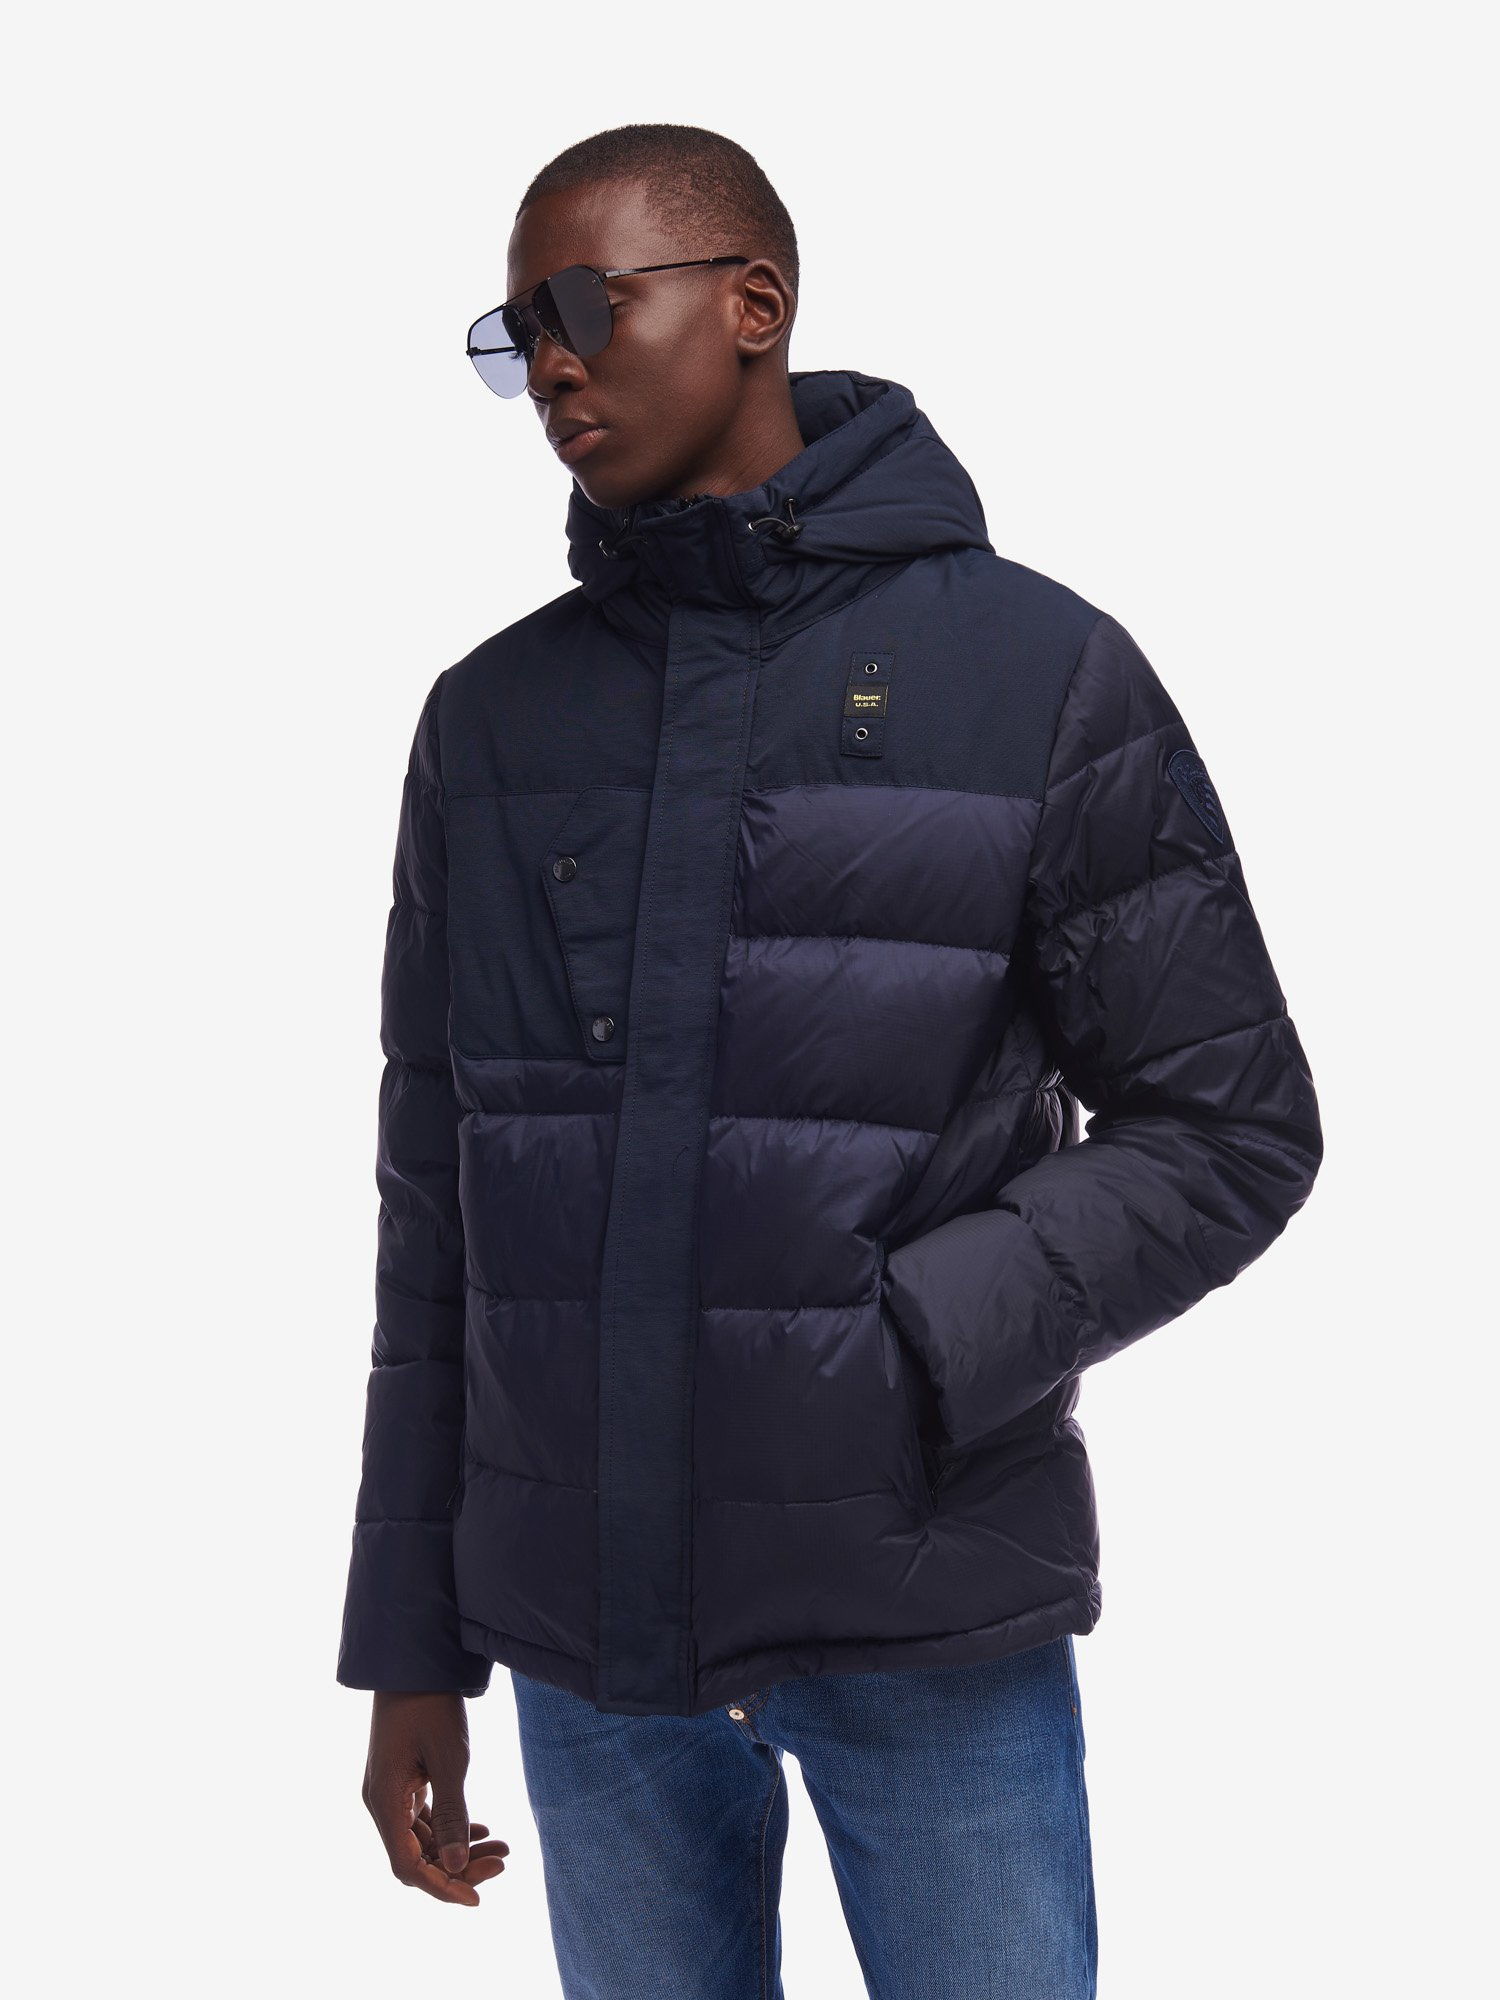 WEST RECYCLED DOWN JACKET - Blauer